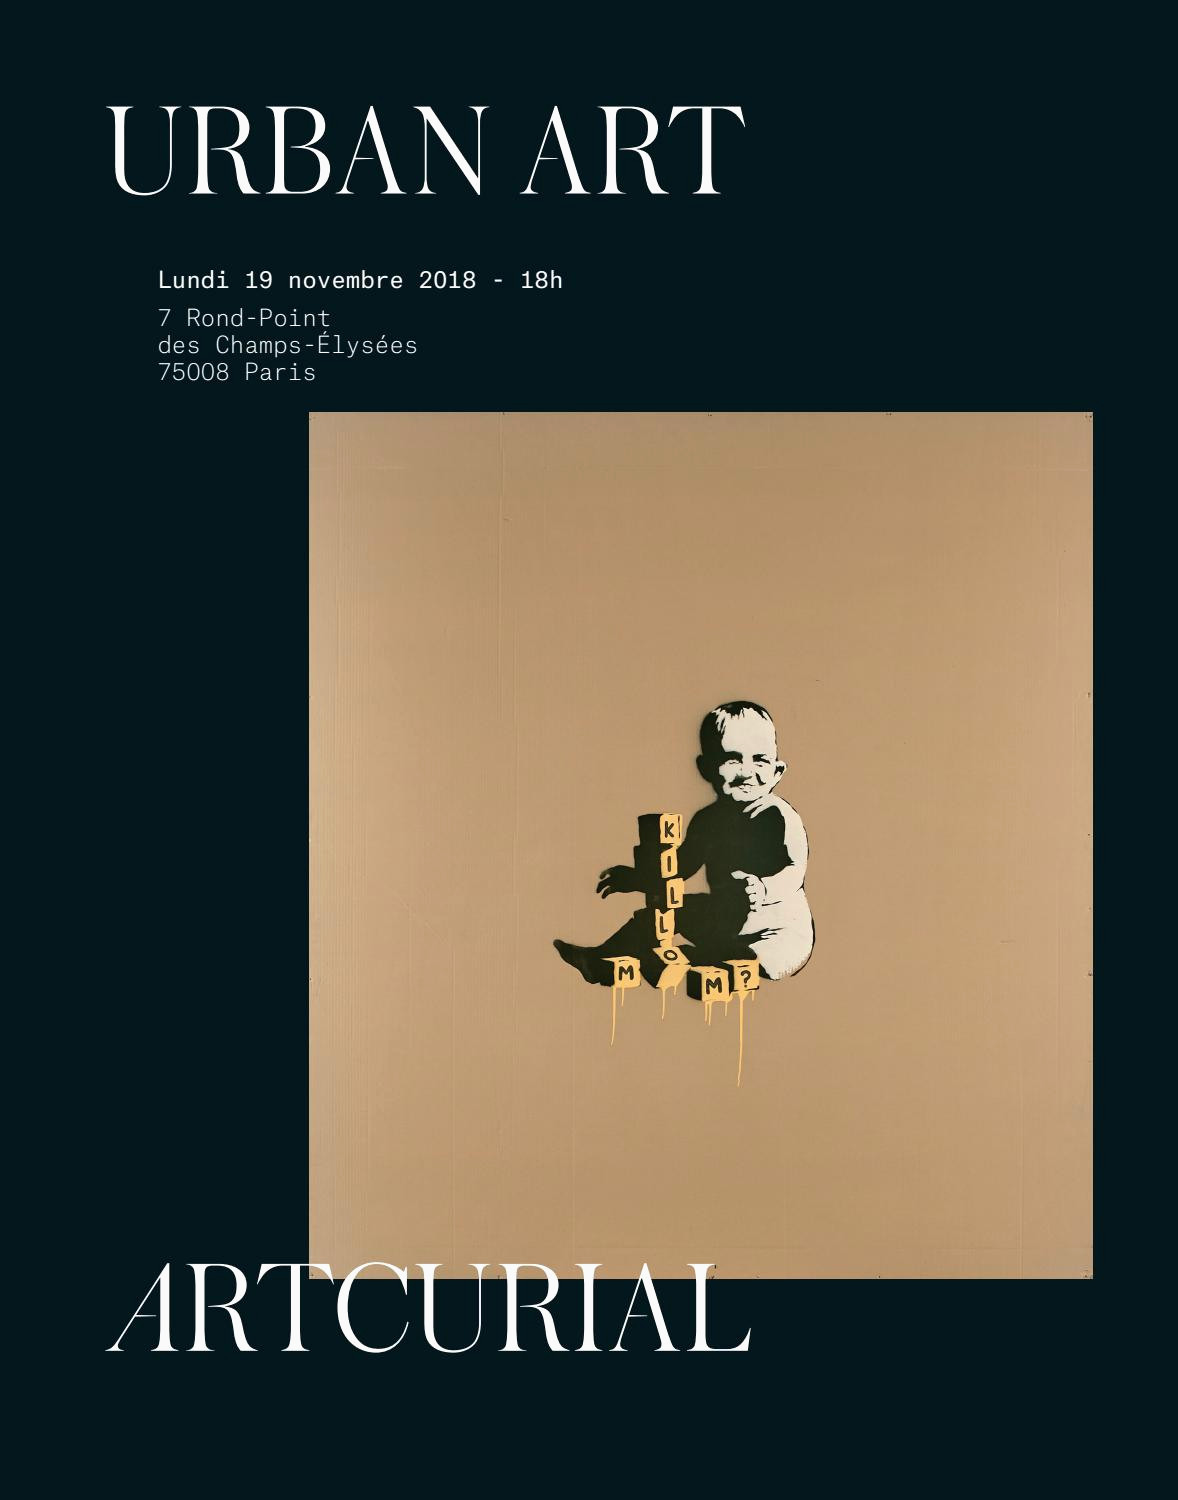 Urban Art by Artcurial issuu